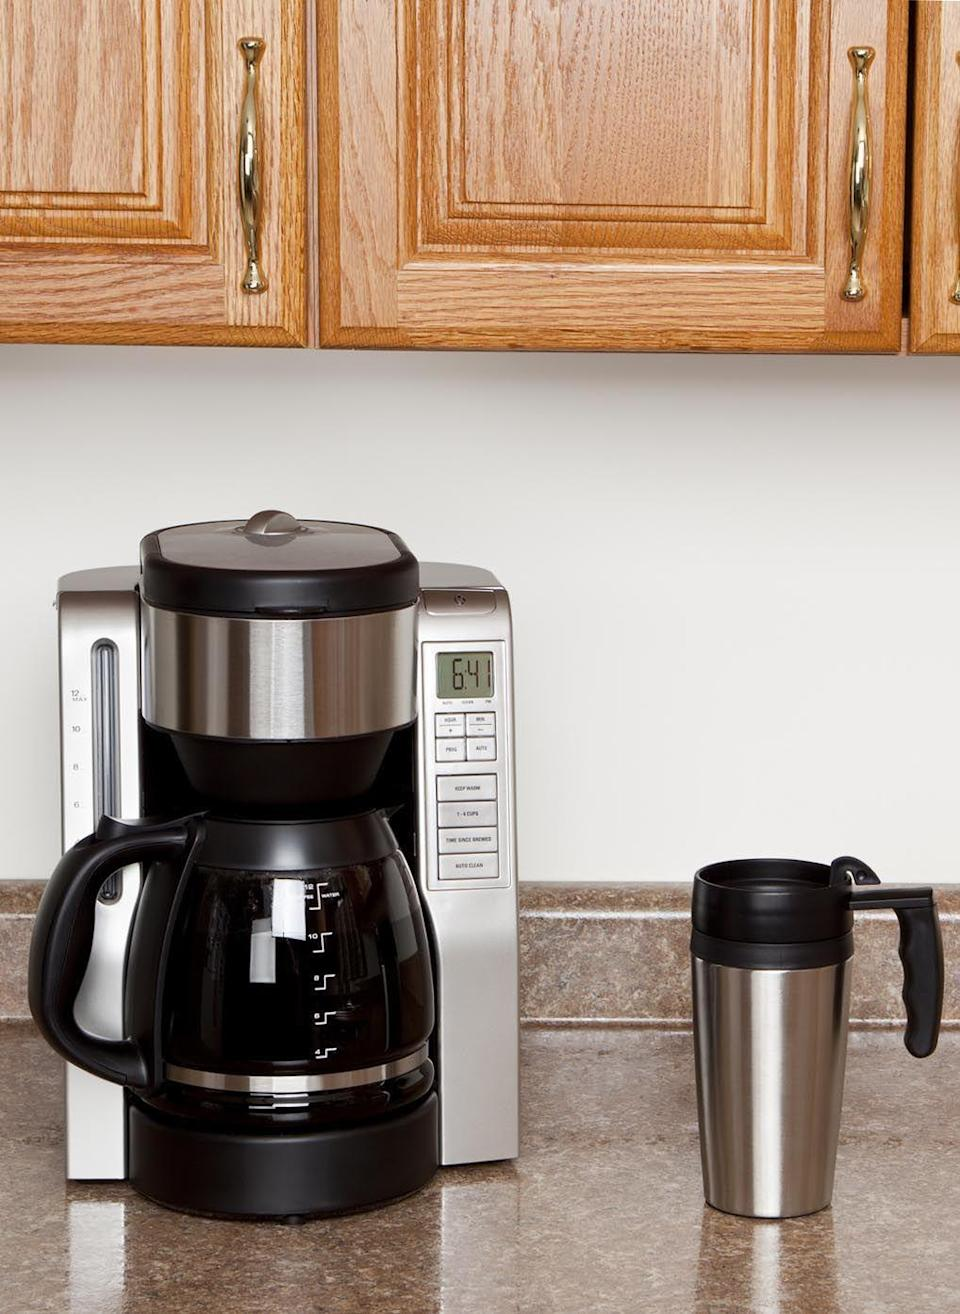 """<p>If you descale your coffeemaker with white vinegar <a href=""""https://www.goodhousekeeping.com/home/cleaning/tips/a26565/cleaning-coffee-maker/"""" rel=""""nofollow noopener"""" target=""""_blank"""" data-ylk=""""slk:every month"""" class=""""link rapid-noclick-resp"""">every month</a>, bravo. But if you notice your morning mug doesn't taste the same the next day, we might know why: """"Not thoroughly flushing the coffeemaker after descaling it could give your next cup of coffee a vinegar taste and smell,"""" says Forte.</p>"""